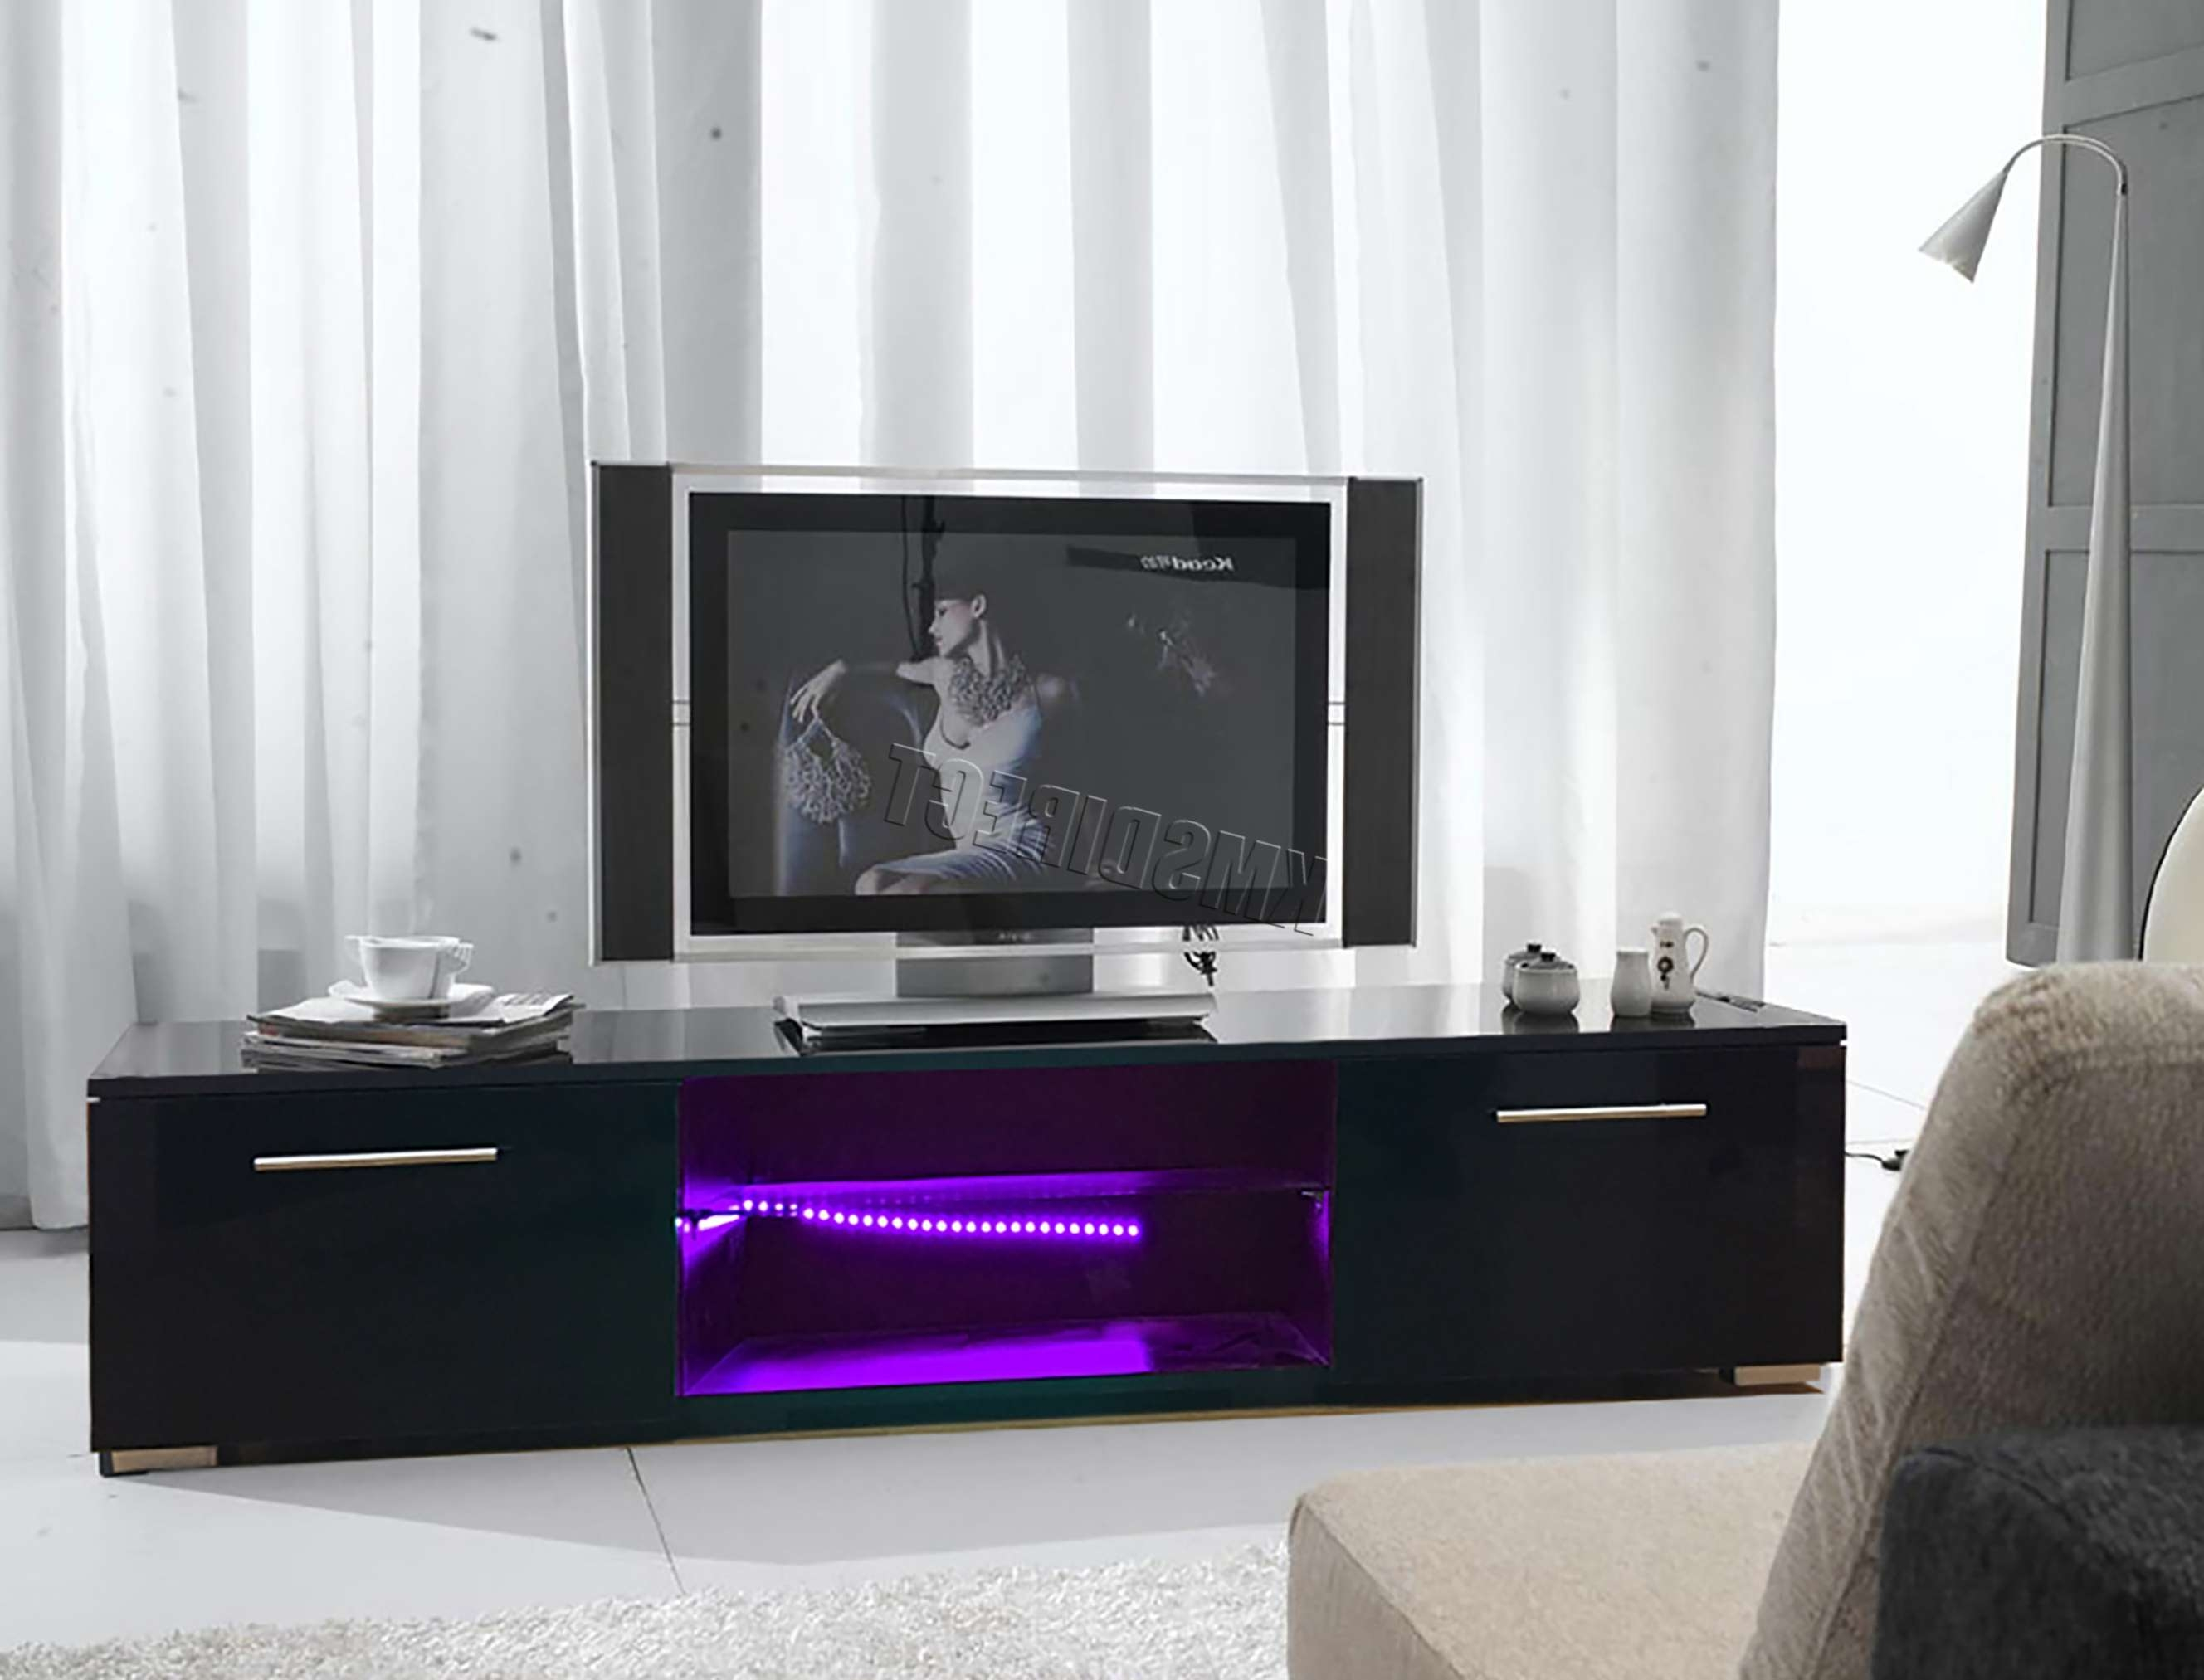 Foxhunter Modern High Gloss Matt Tv Cabinet Unit Stand Black Rgb Throughout Black Gloss Tv Cabinets (View 18 of 20)